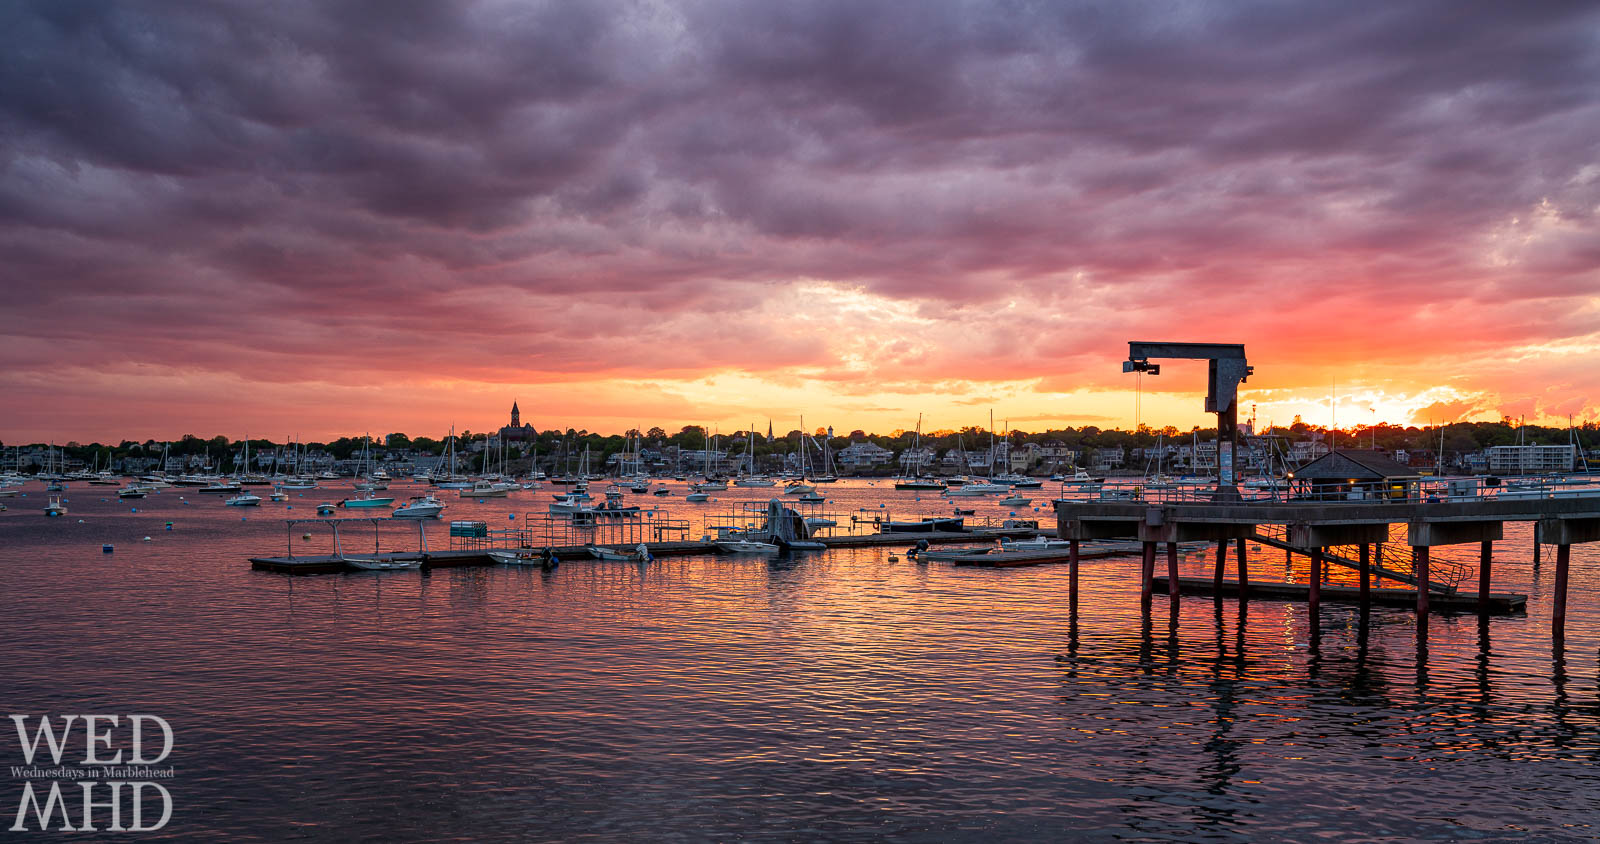 The end of May brings a picture perfect sunset view from Corinthian Lane on Marblehead Neck